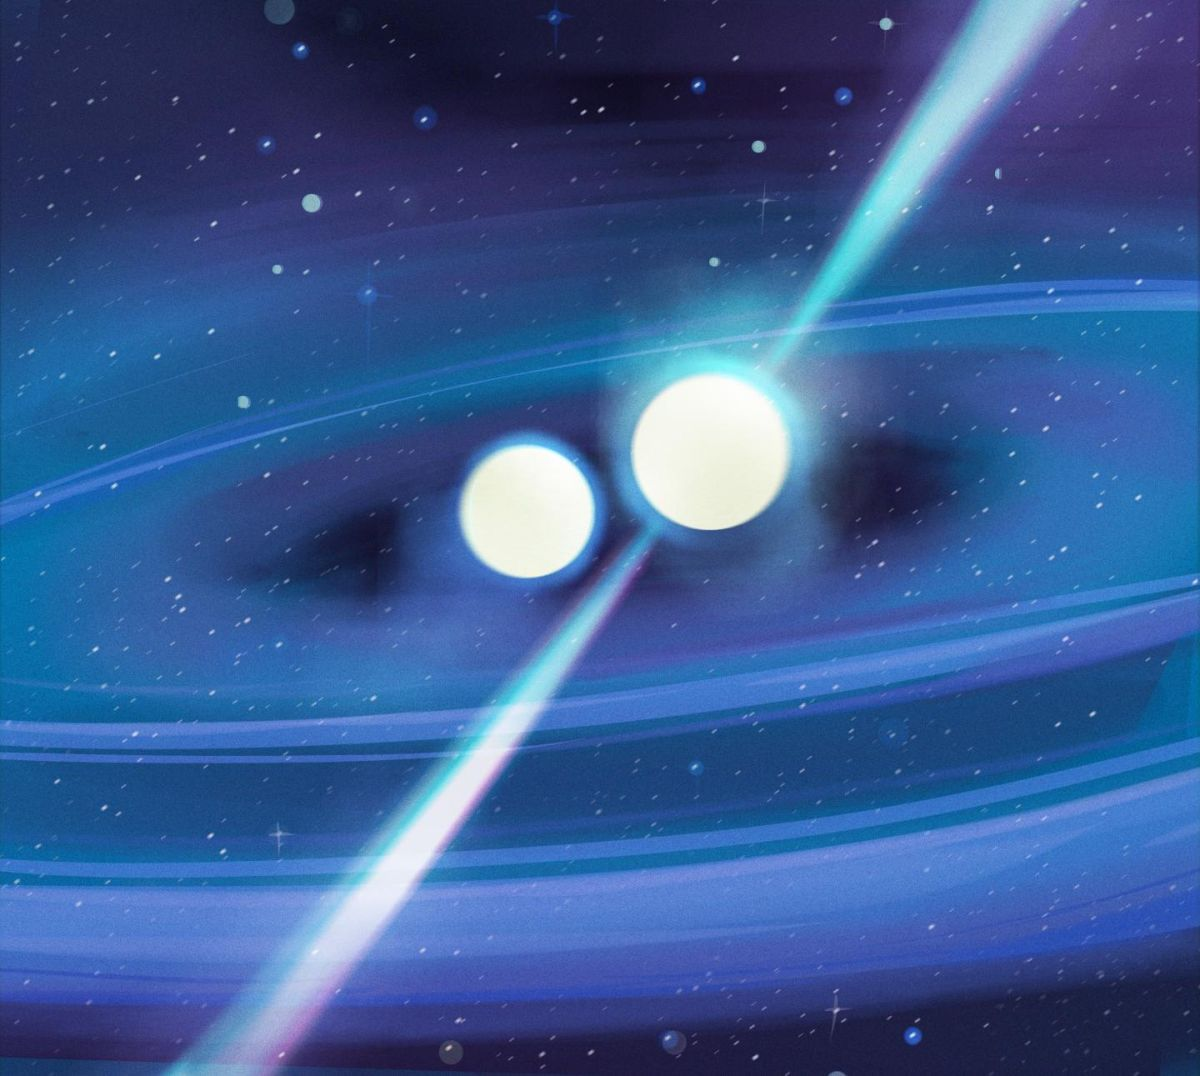 Pulsar discovery may solve mystery of strange neutron star crashes - Space.com